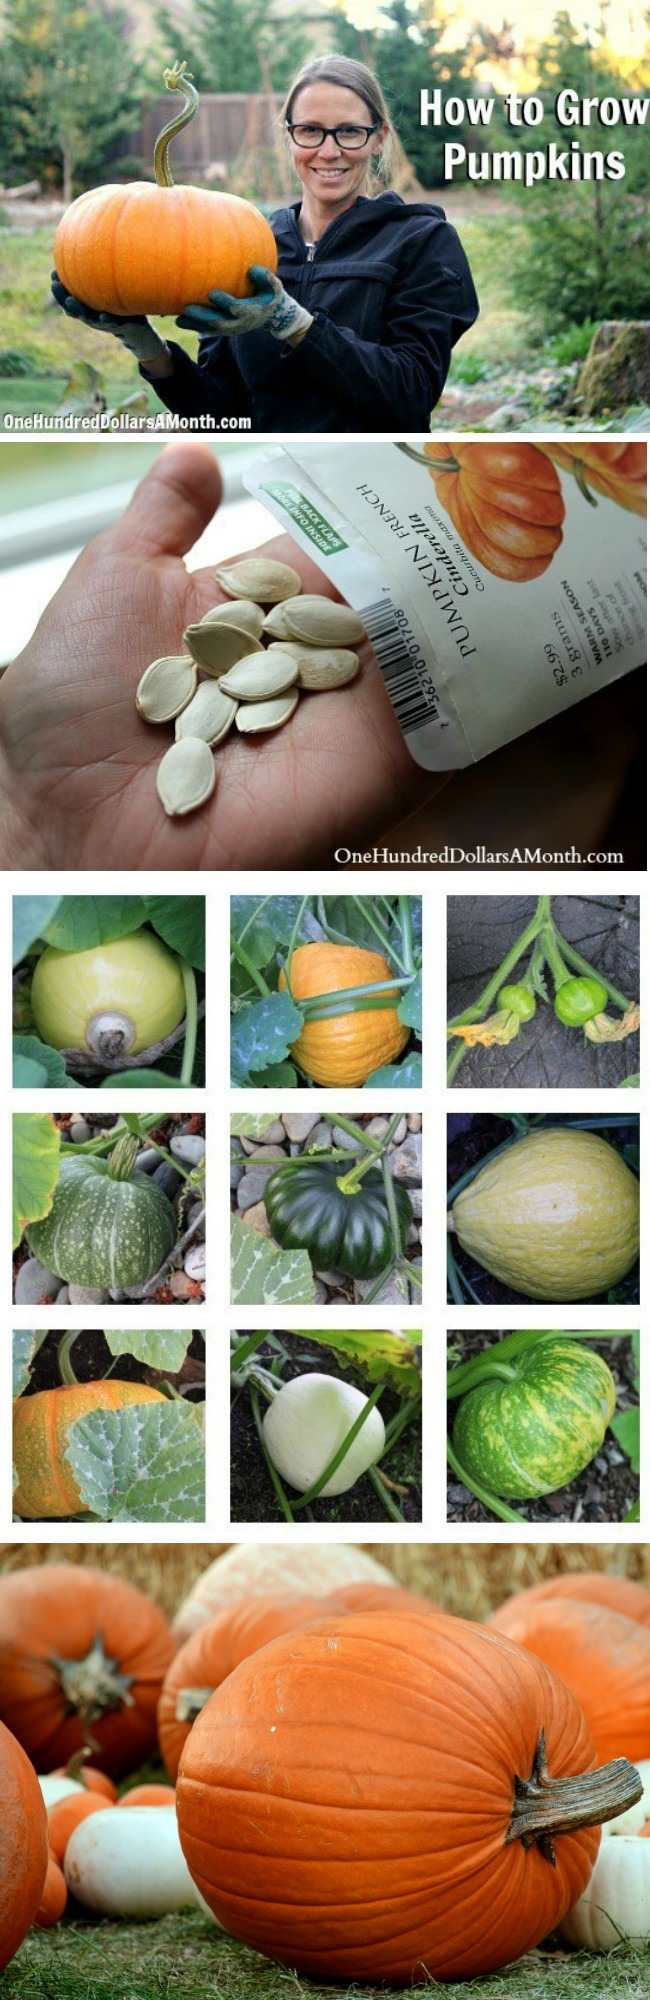 How to Grow Pumpkins {Start to Finish}